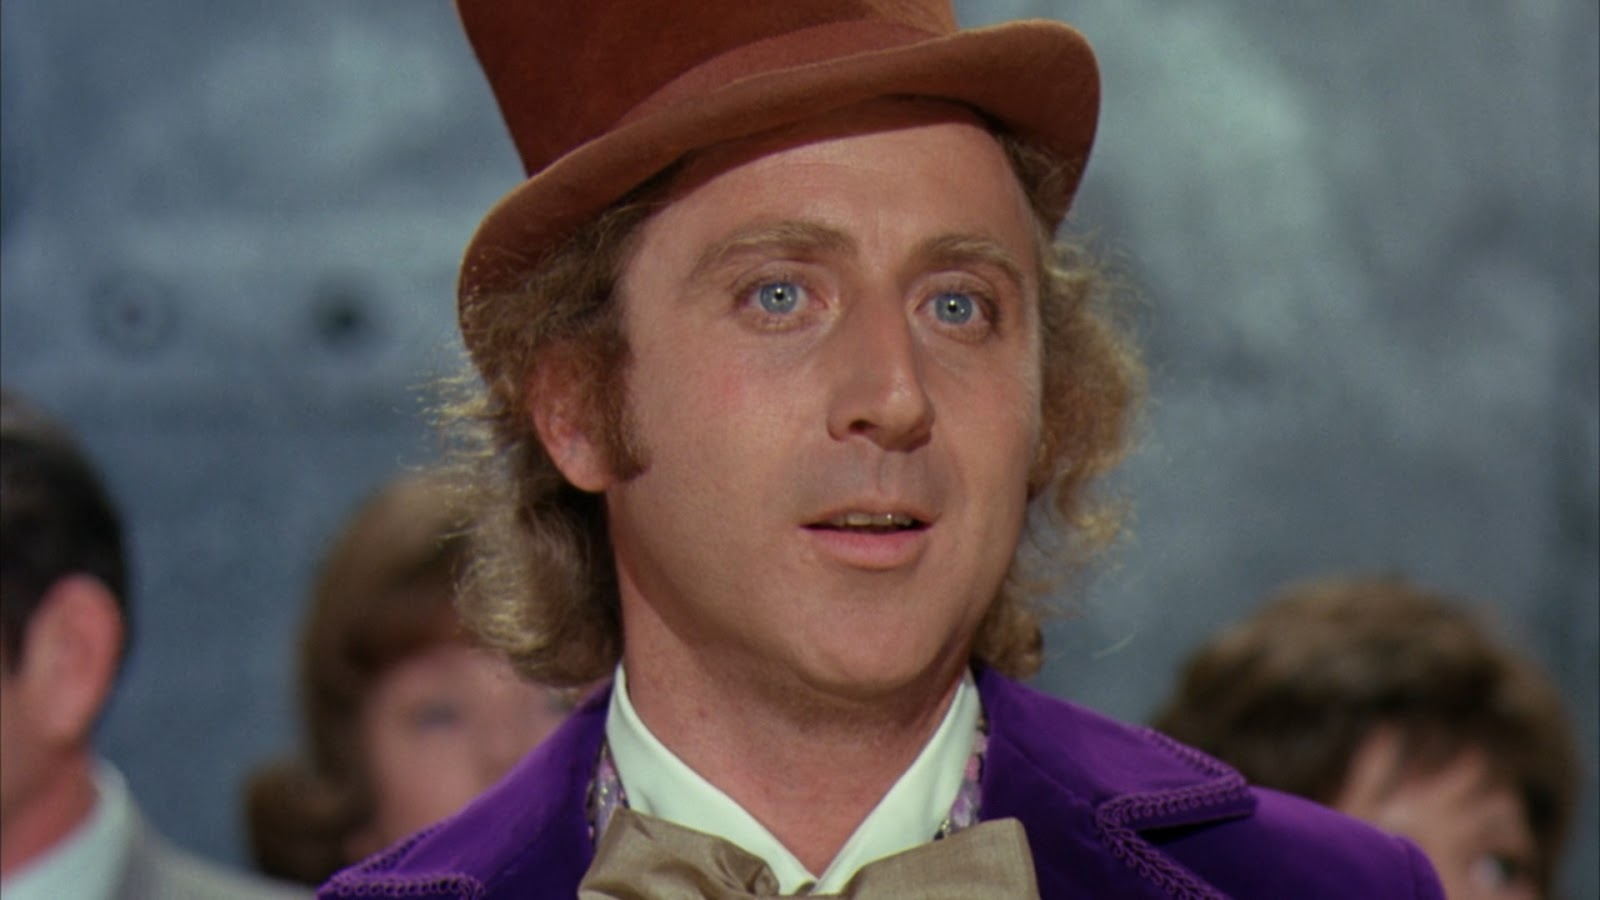 Posted by Mr Darnley at 23 25Oh Really Willy Wonka